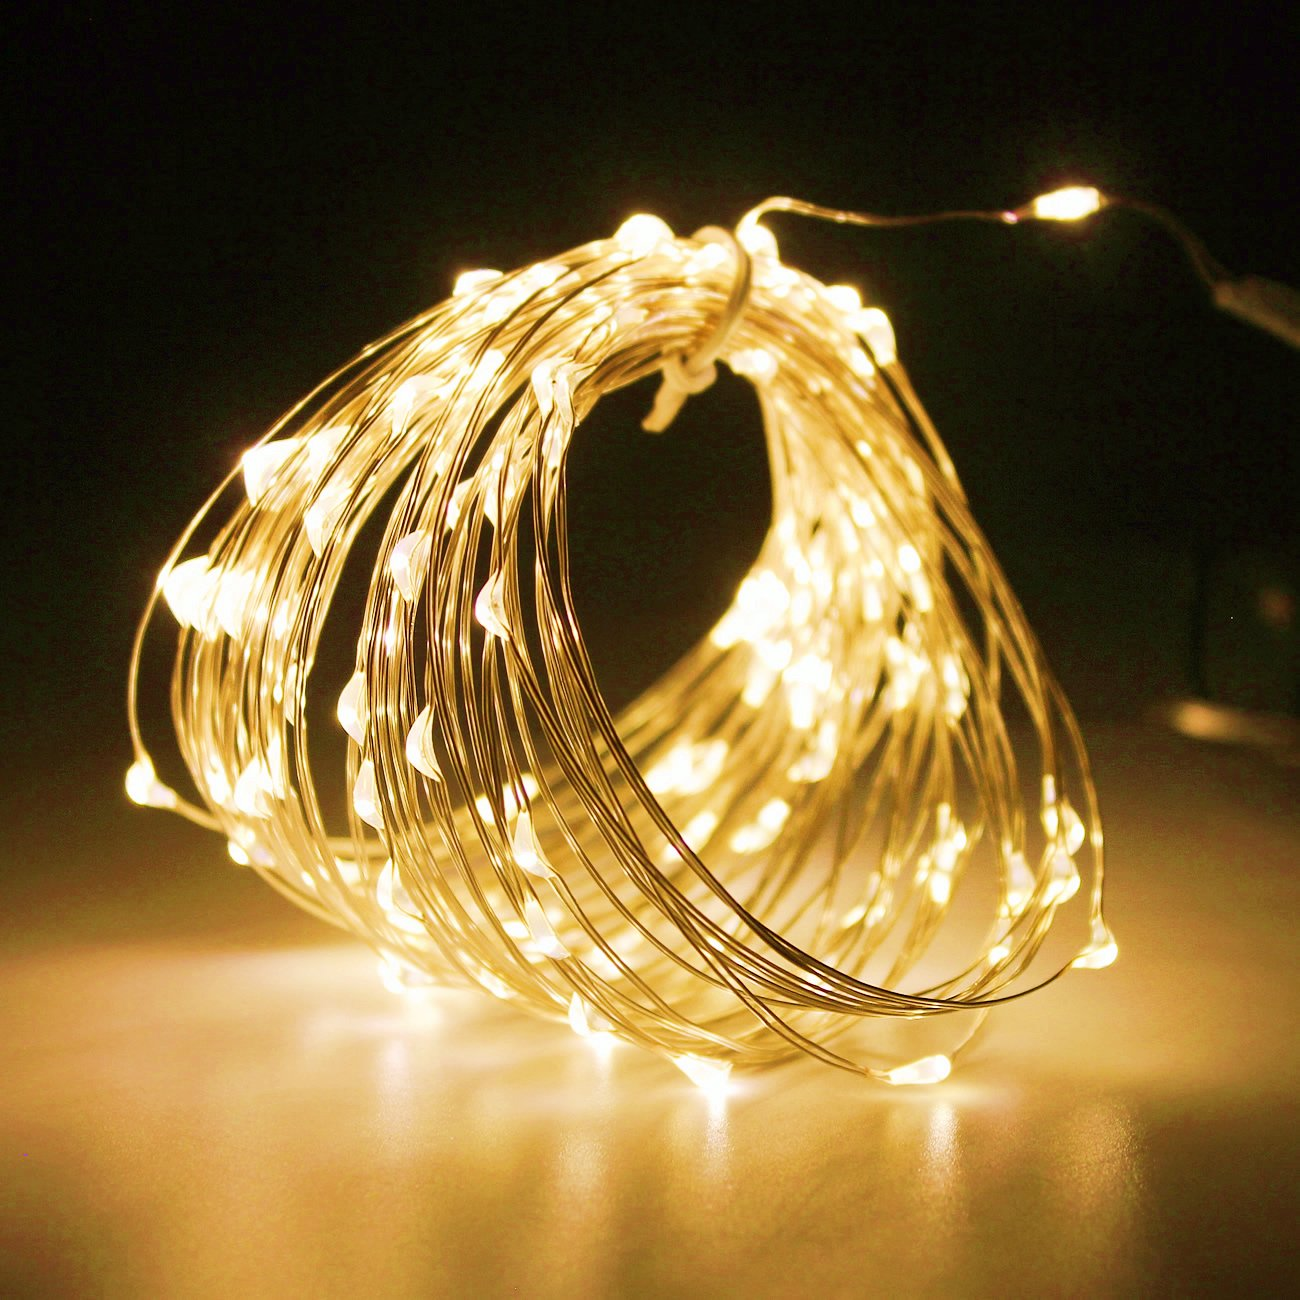 Garden PMS 200 LED 65ft String Lights Fairy Starry Lights Sliver Color Copper Wire Battery Operated Waterproof Outdoor Indoor Decorative for Christmas 200LEDs, Multicolor Party,Wedding PMS LTD